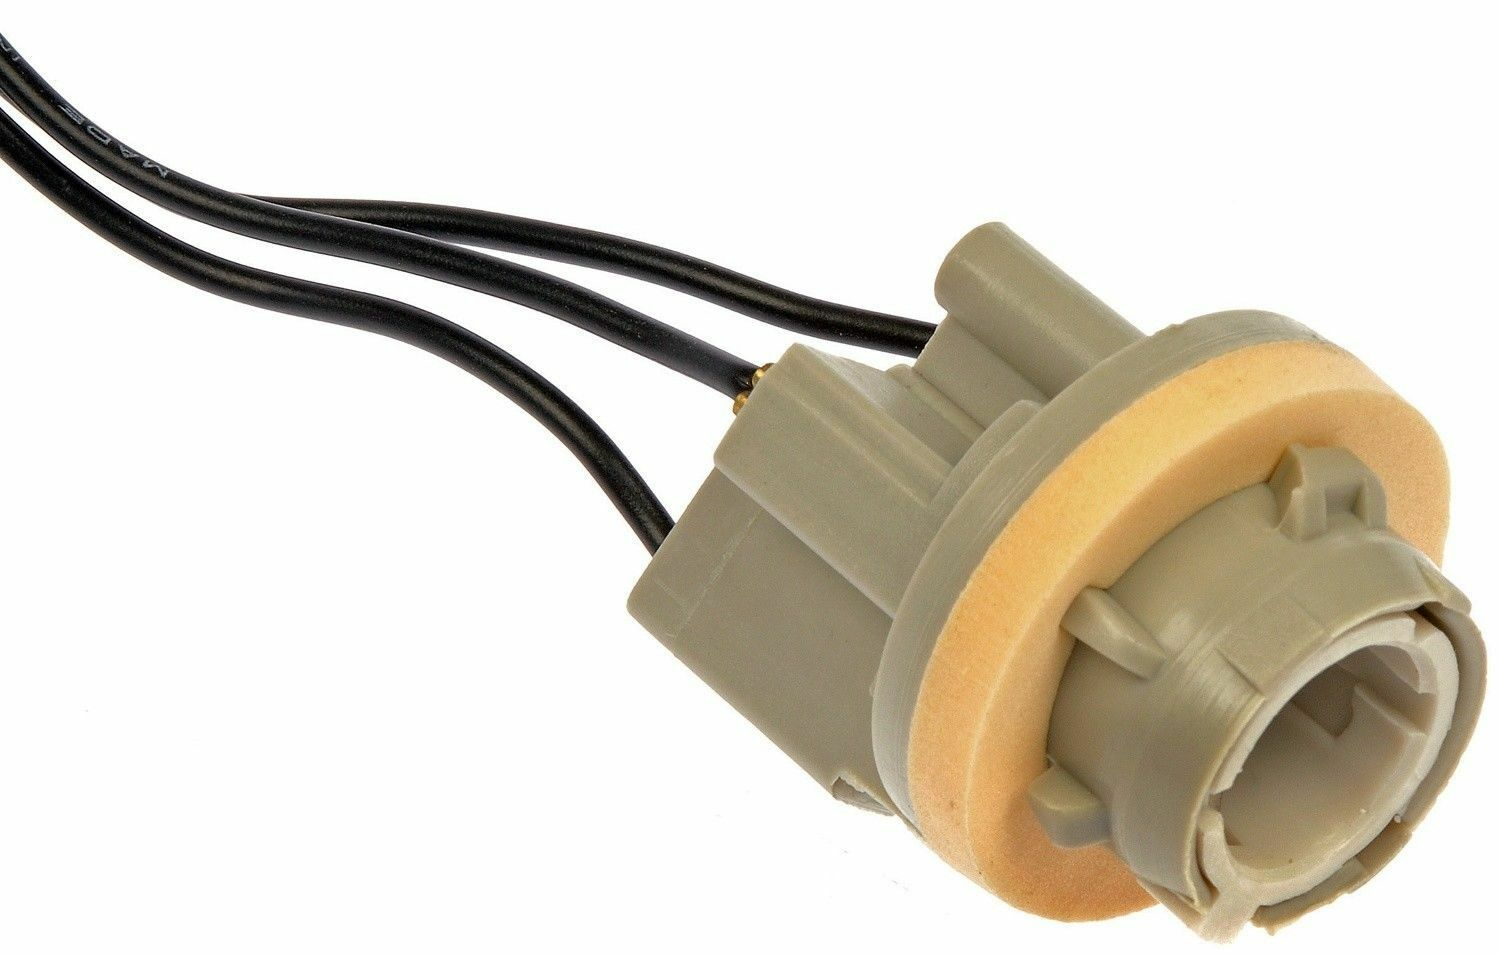 Stop Tail /& Turn Socket Dorman 643-058 3-Wire Ford /& GM Double Contact Park